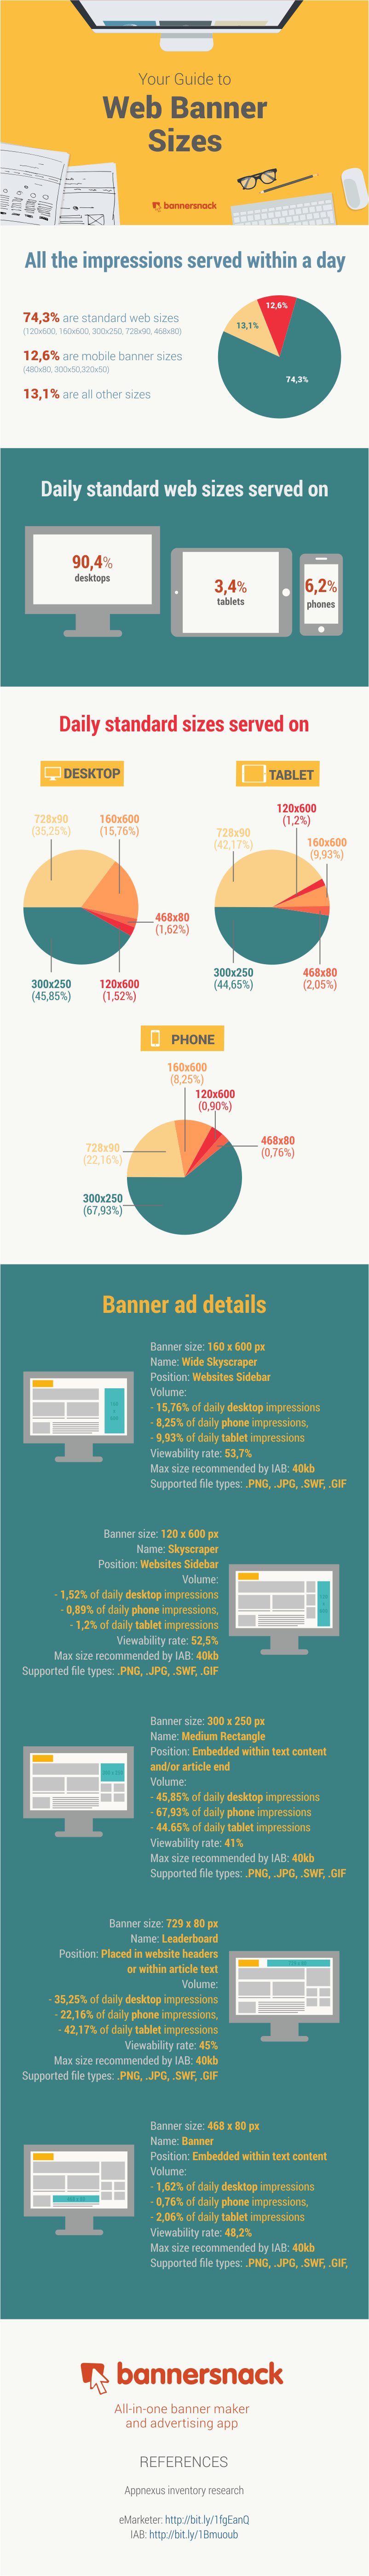 Infographic: Full guide to web banner ad sizes